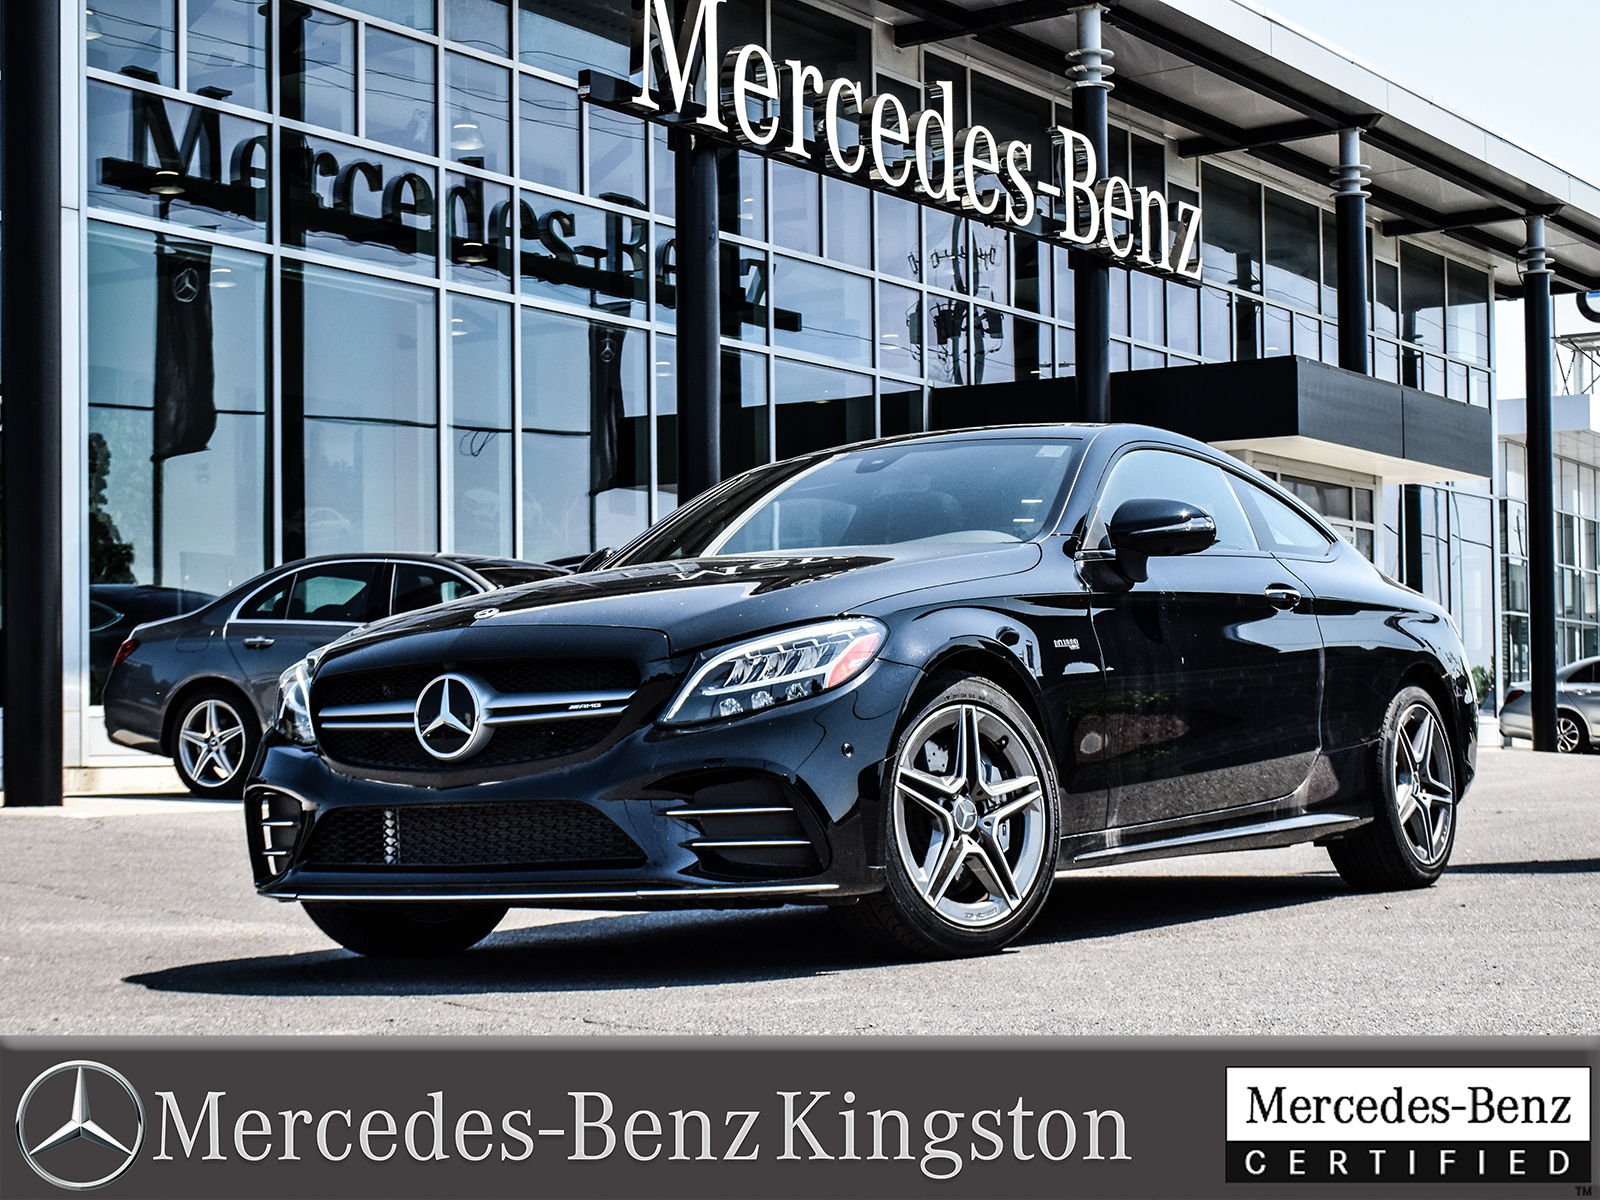 Mercedes Benz Kingston Pre Owned 2019 Mercedes Benz C43 Amg For Sale 59788 0